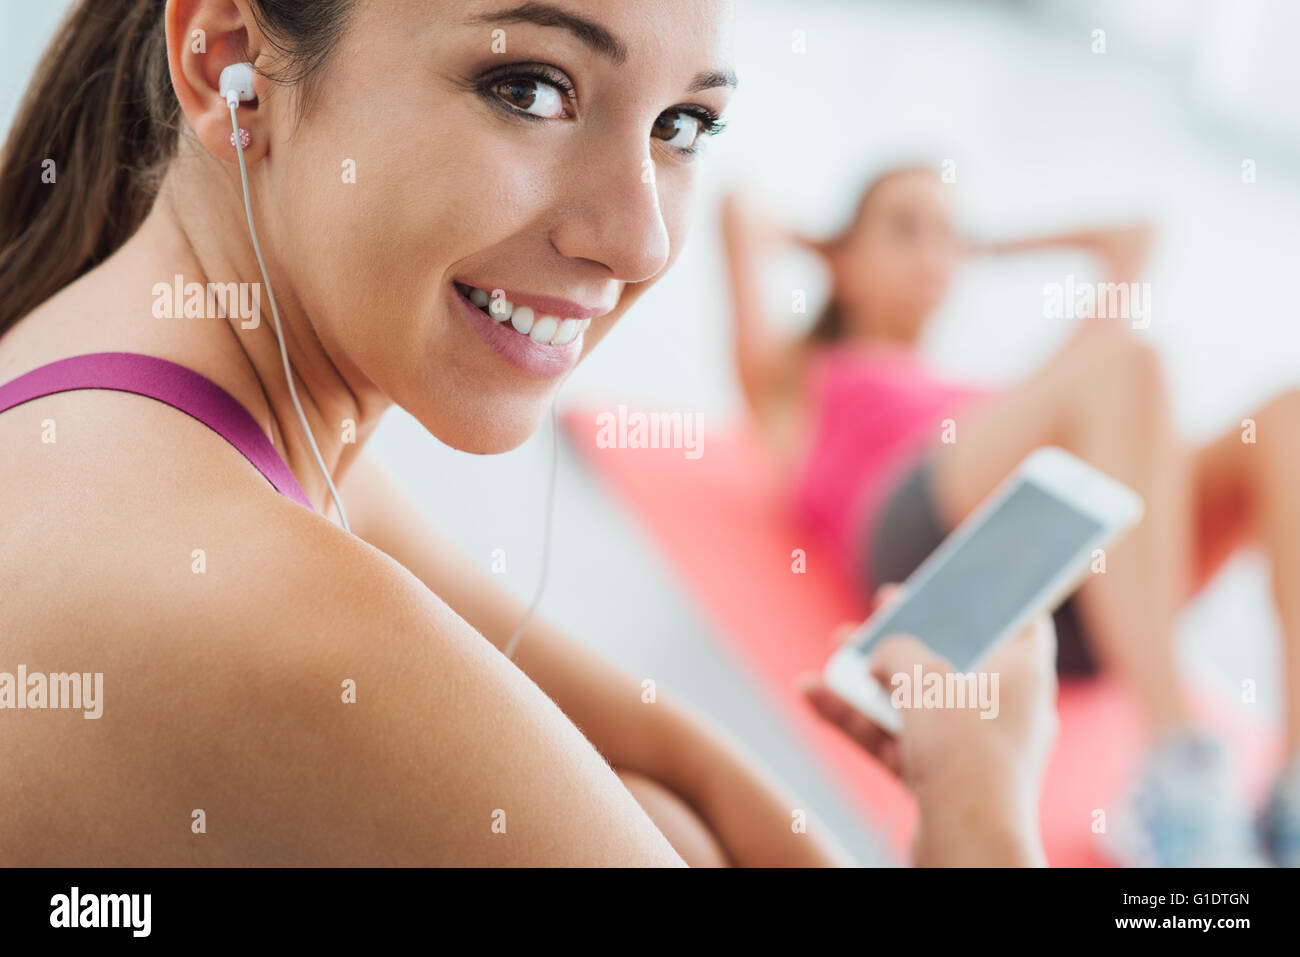 Young smiling woman at the gym having a break and listening to music using a smart phone and earphones, fitness - Stock Image